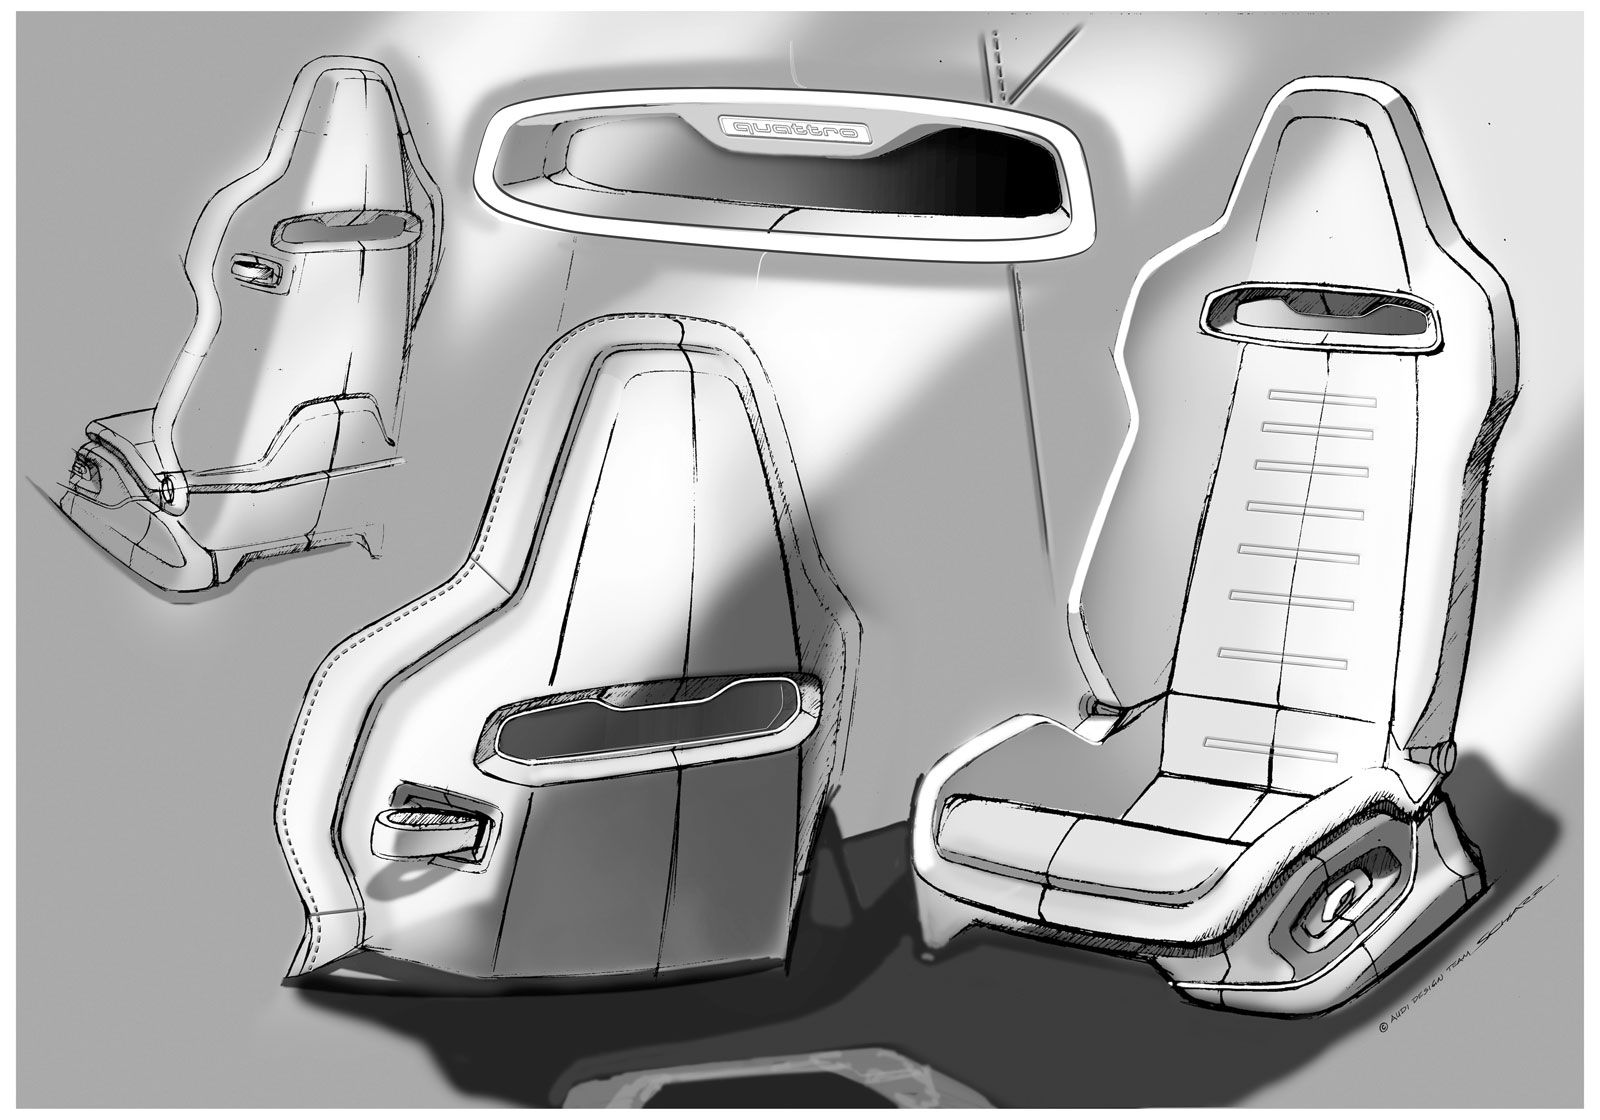 04 audi sport quattro concept interior design sketch seats 1600 1120 automotive. Black Bedroom Furniture Sets. Home Design Ideas